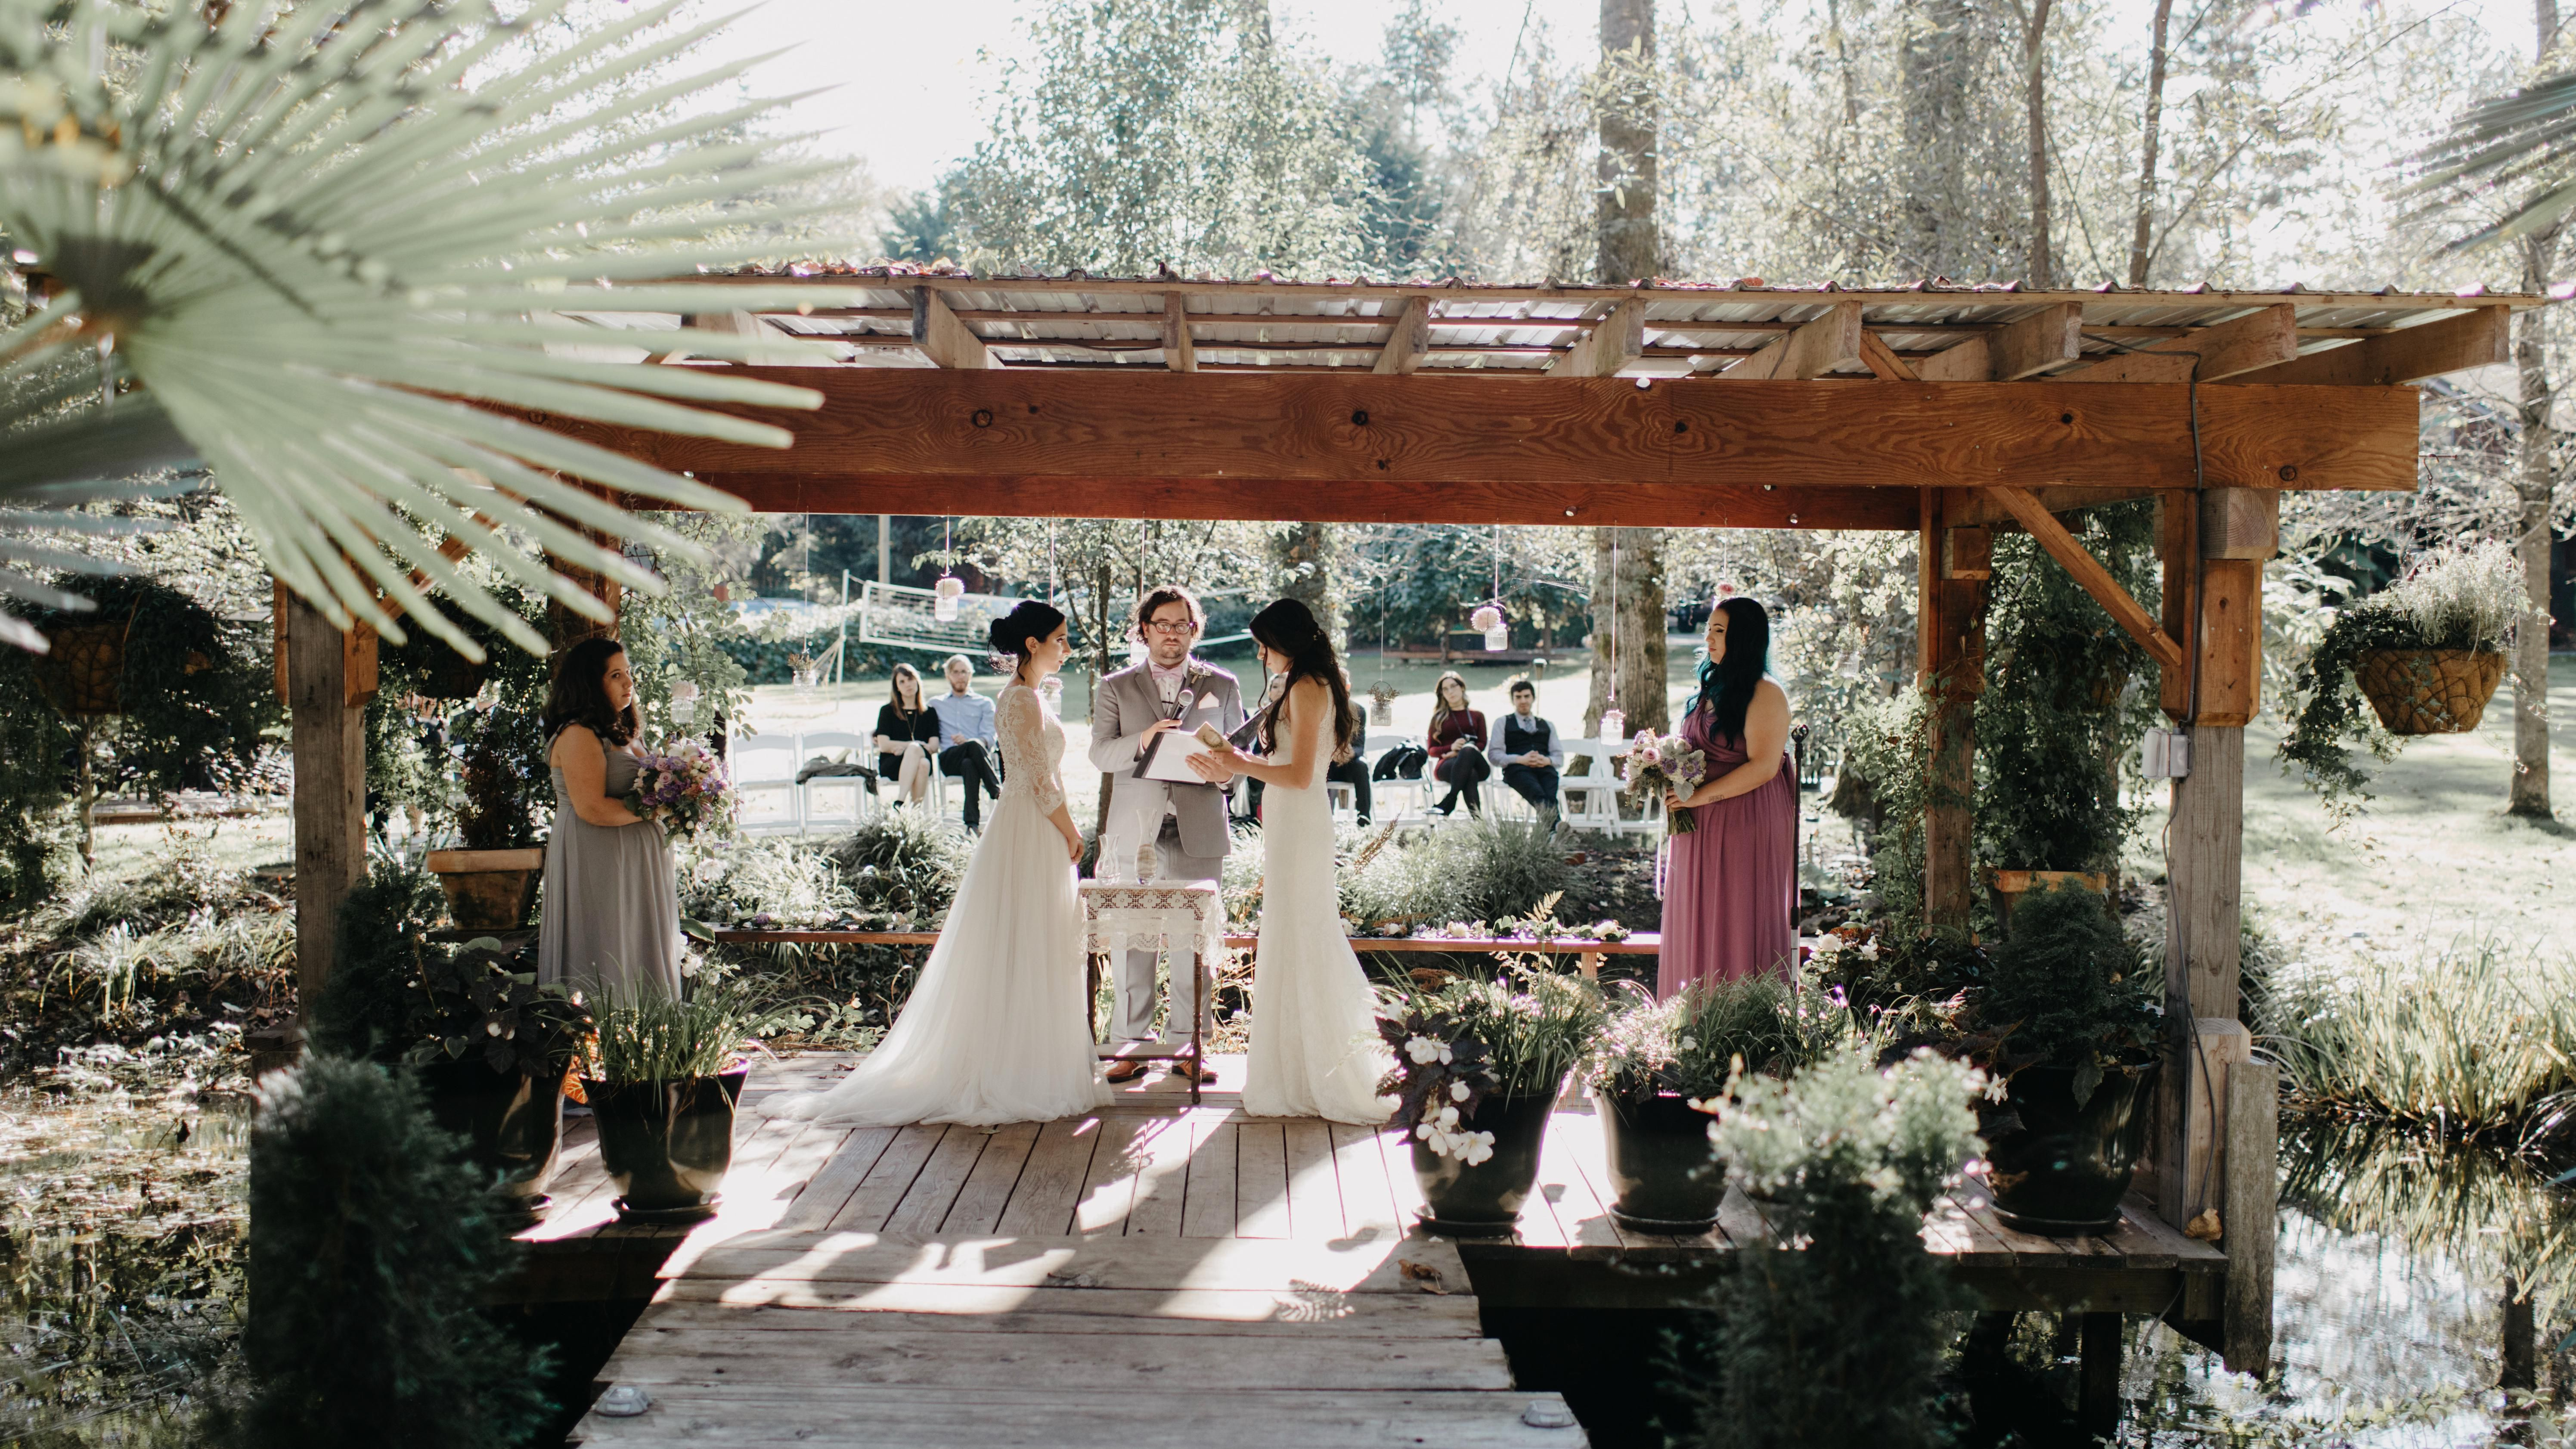 Wedding Ceremony Outline How To Plan The Order Of Events